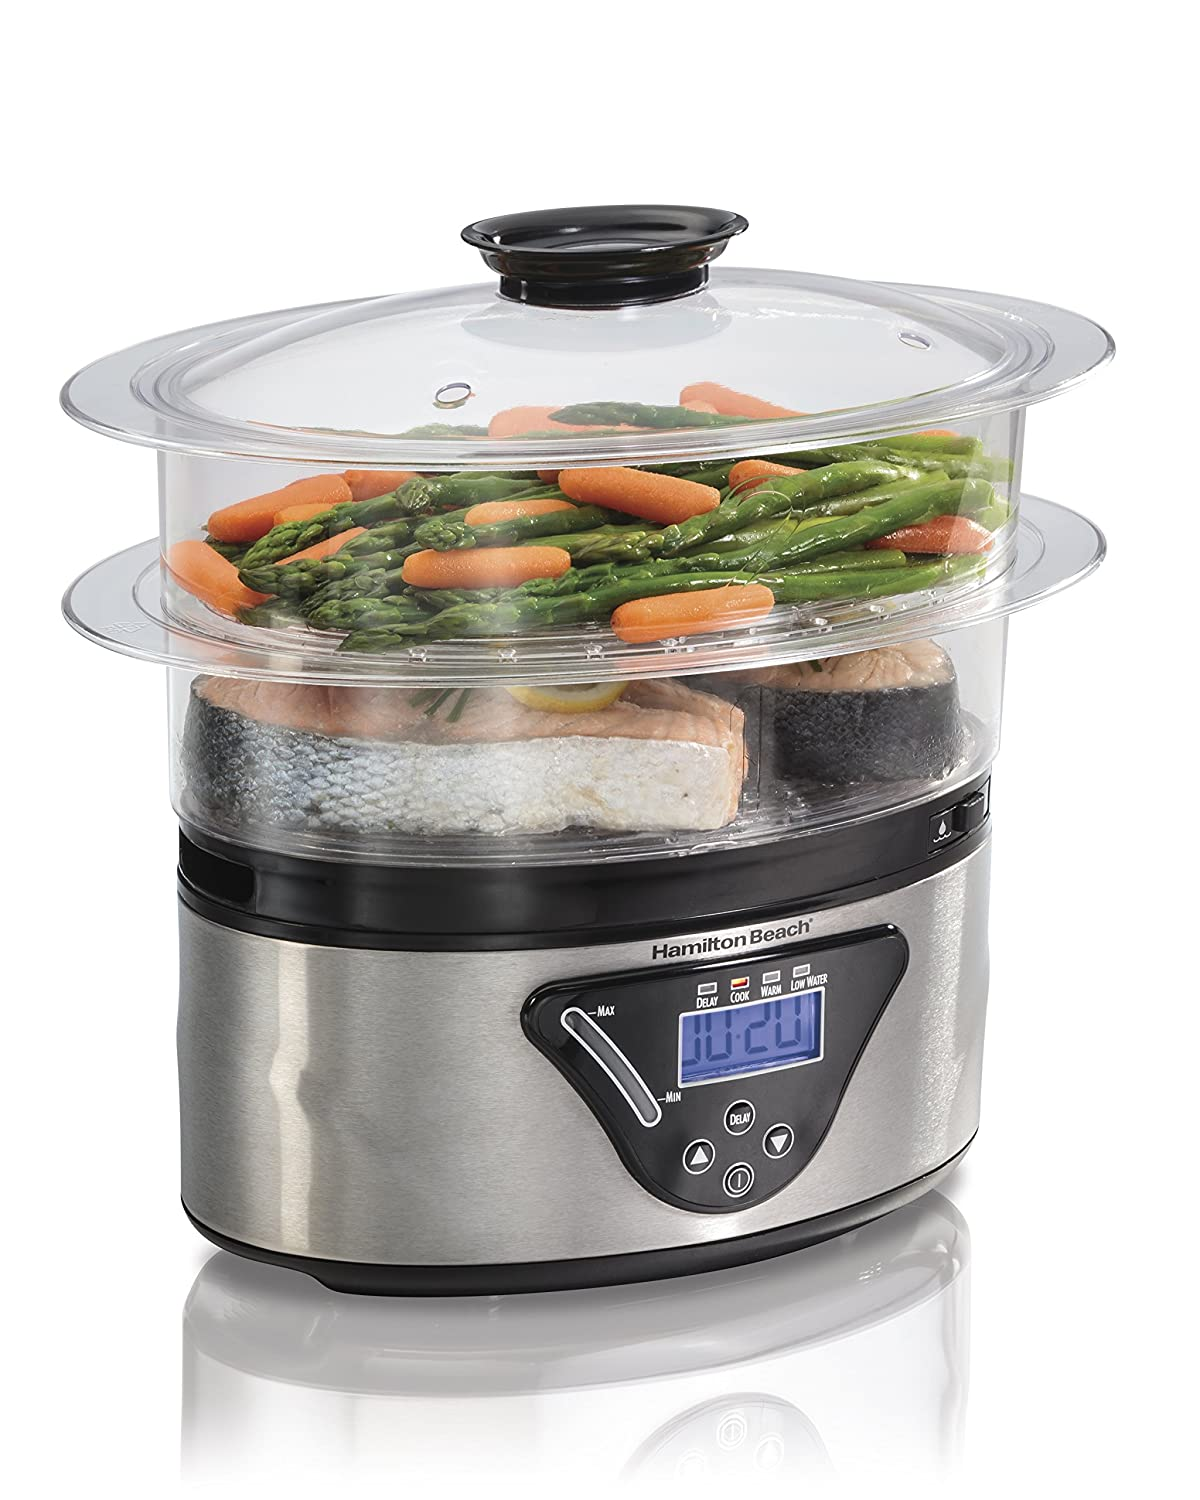 Hamilton Beach Digital Food Steamer